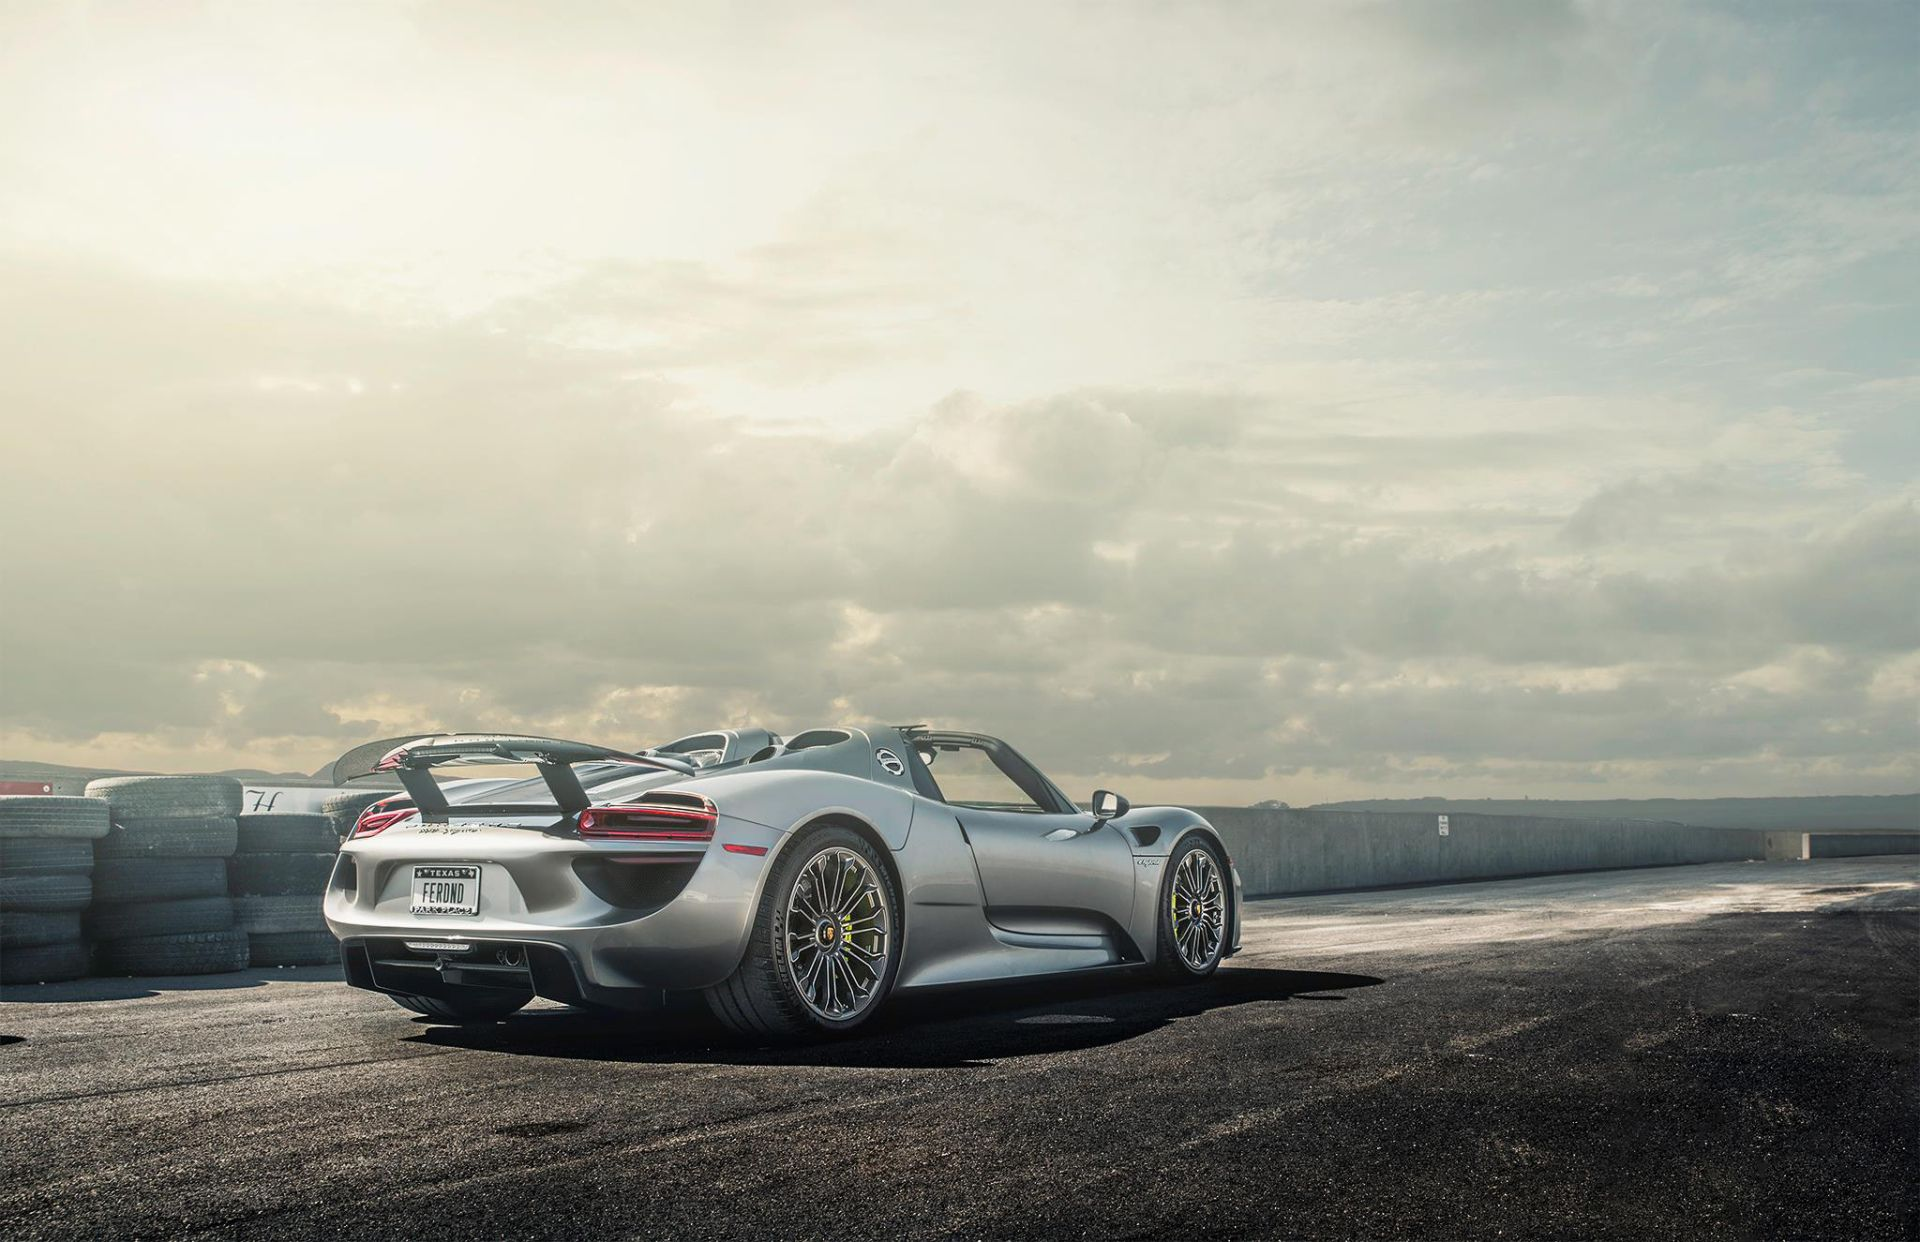 Vehicles Porsche 918 Spyder Porsche Car Supercar Vehicle